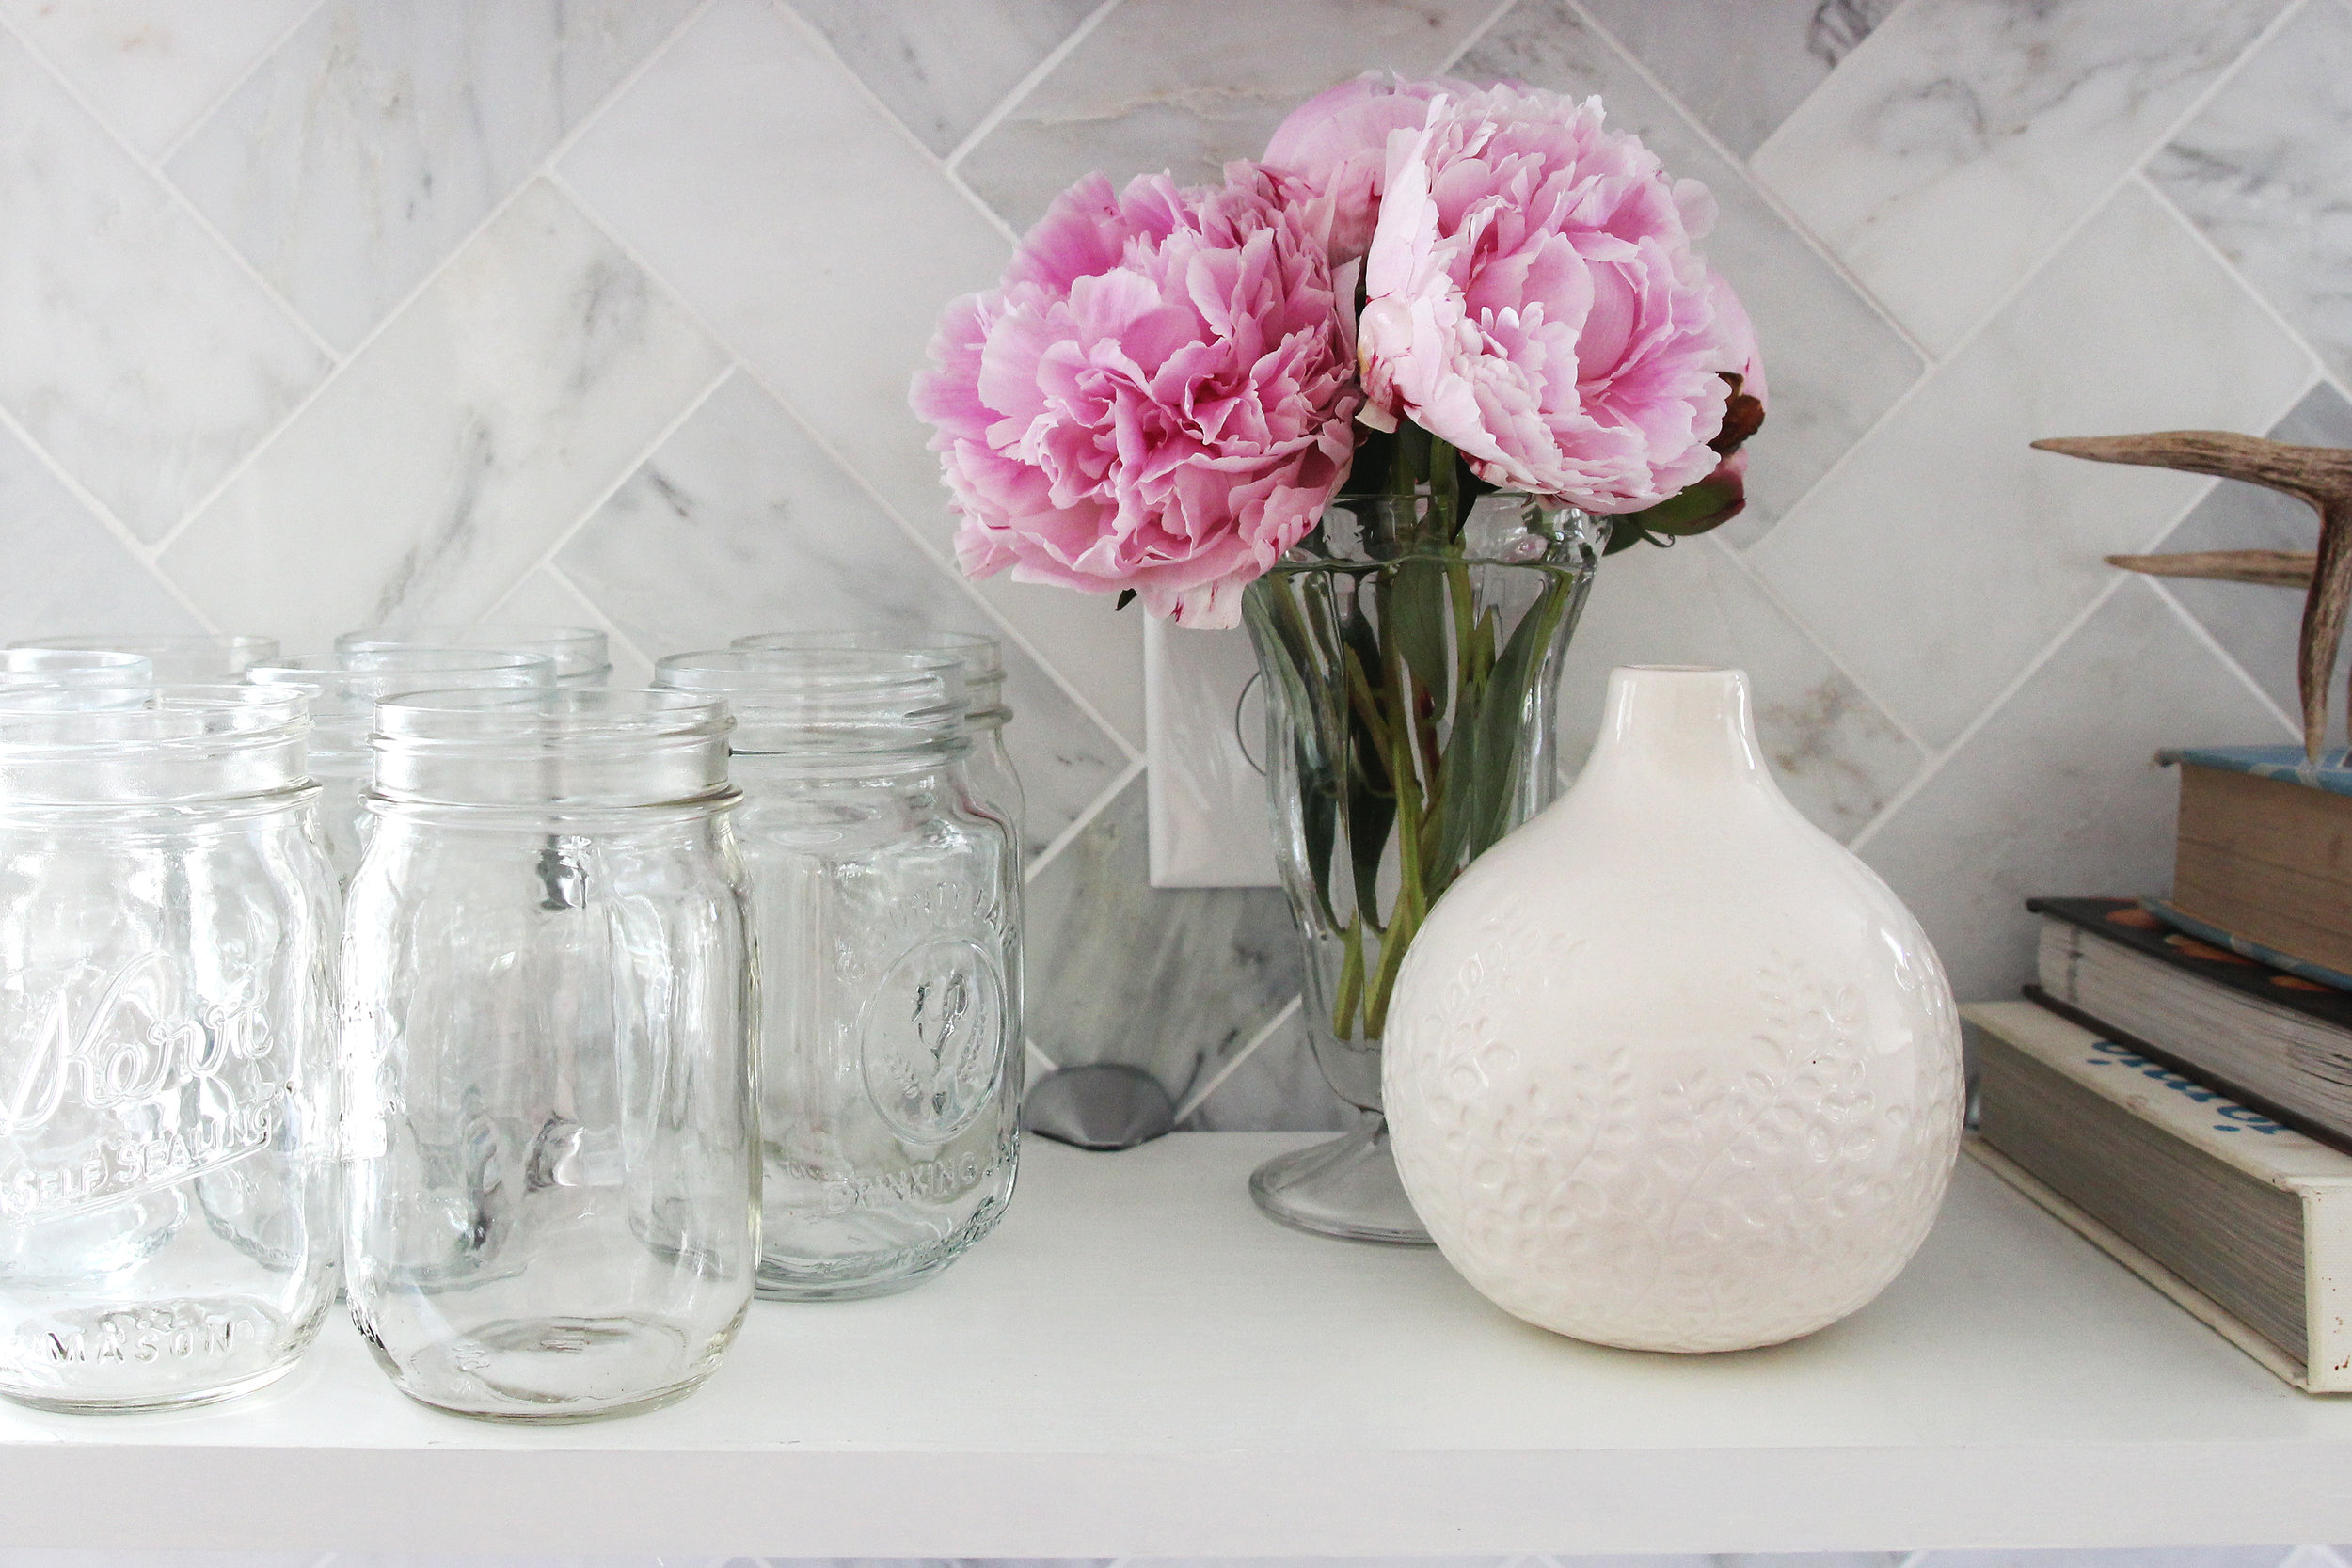 Kitchen Open Shelves Glasses and Flowers and Vase